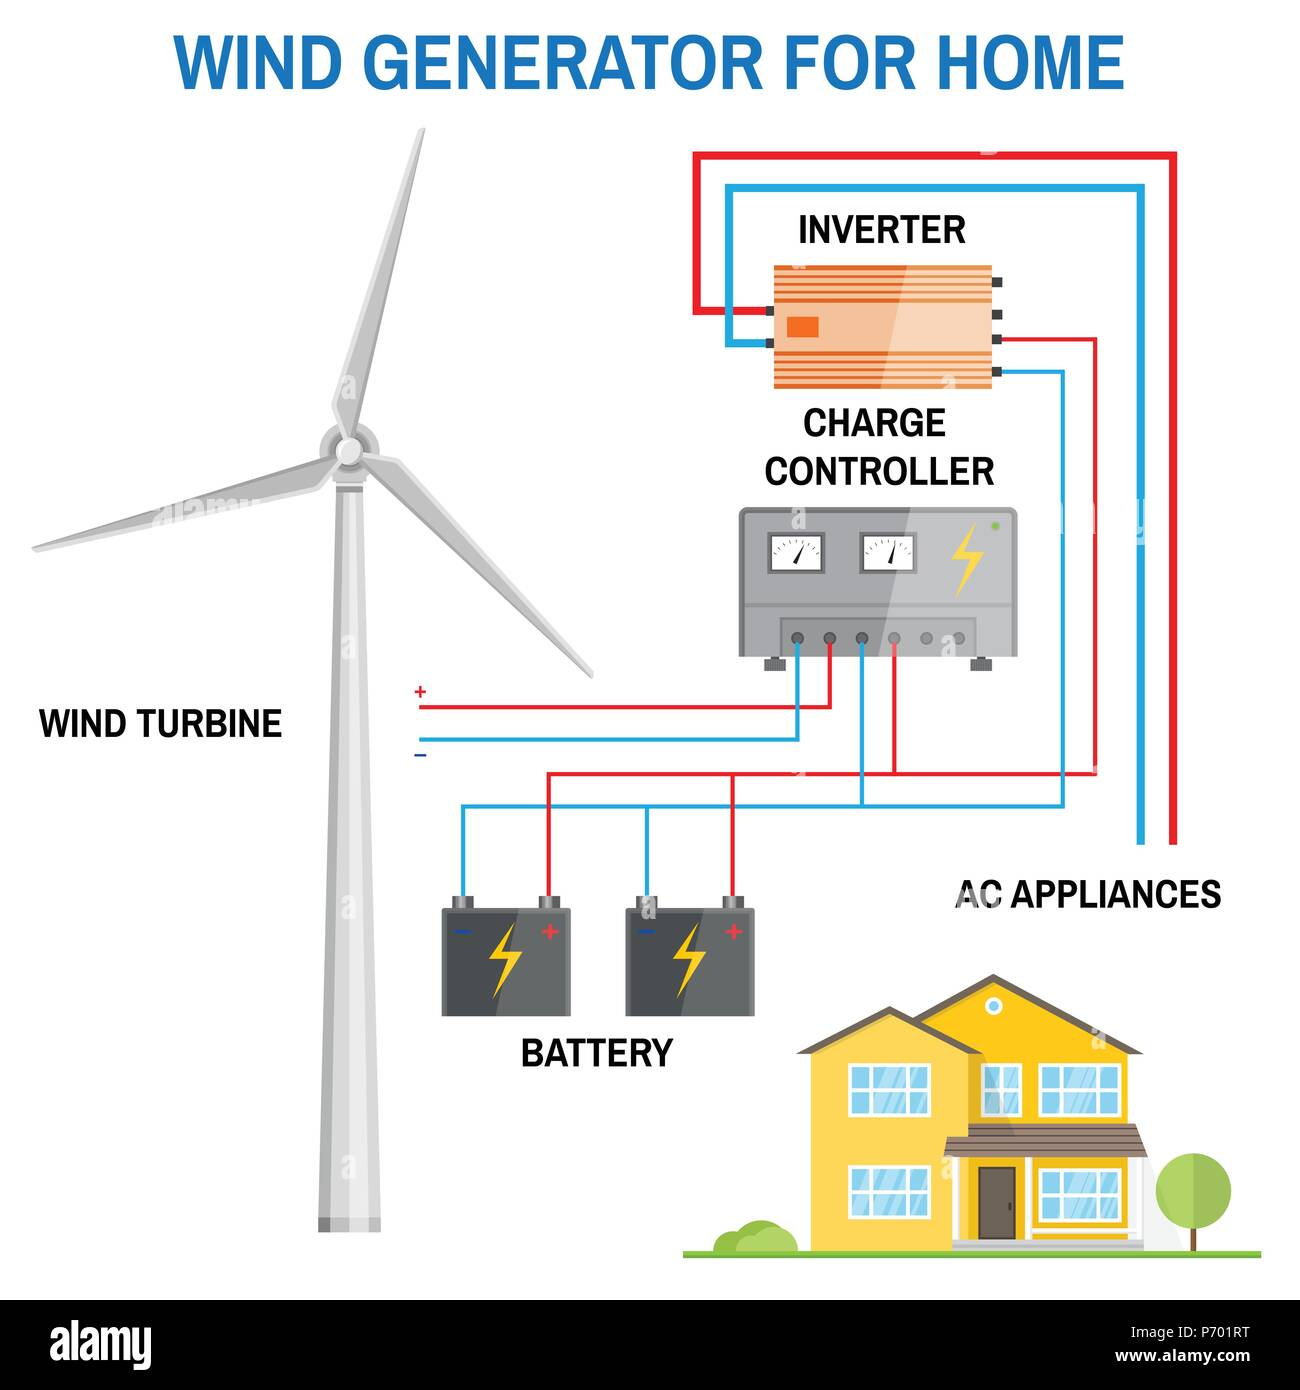 Turbine Stock Vector Images Alamy Wind Schematic Generator For Home Renewable Energy Concept Simplified Diagram Of An Off Grid